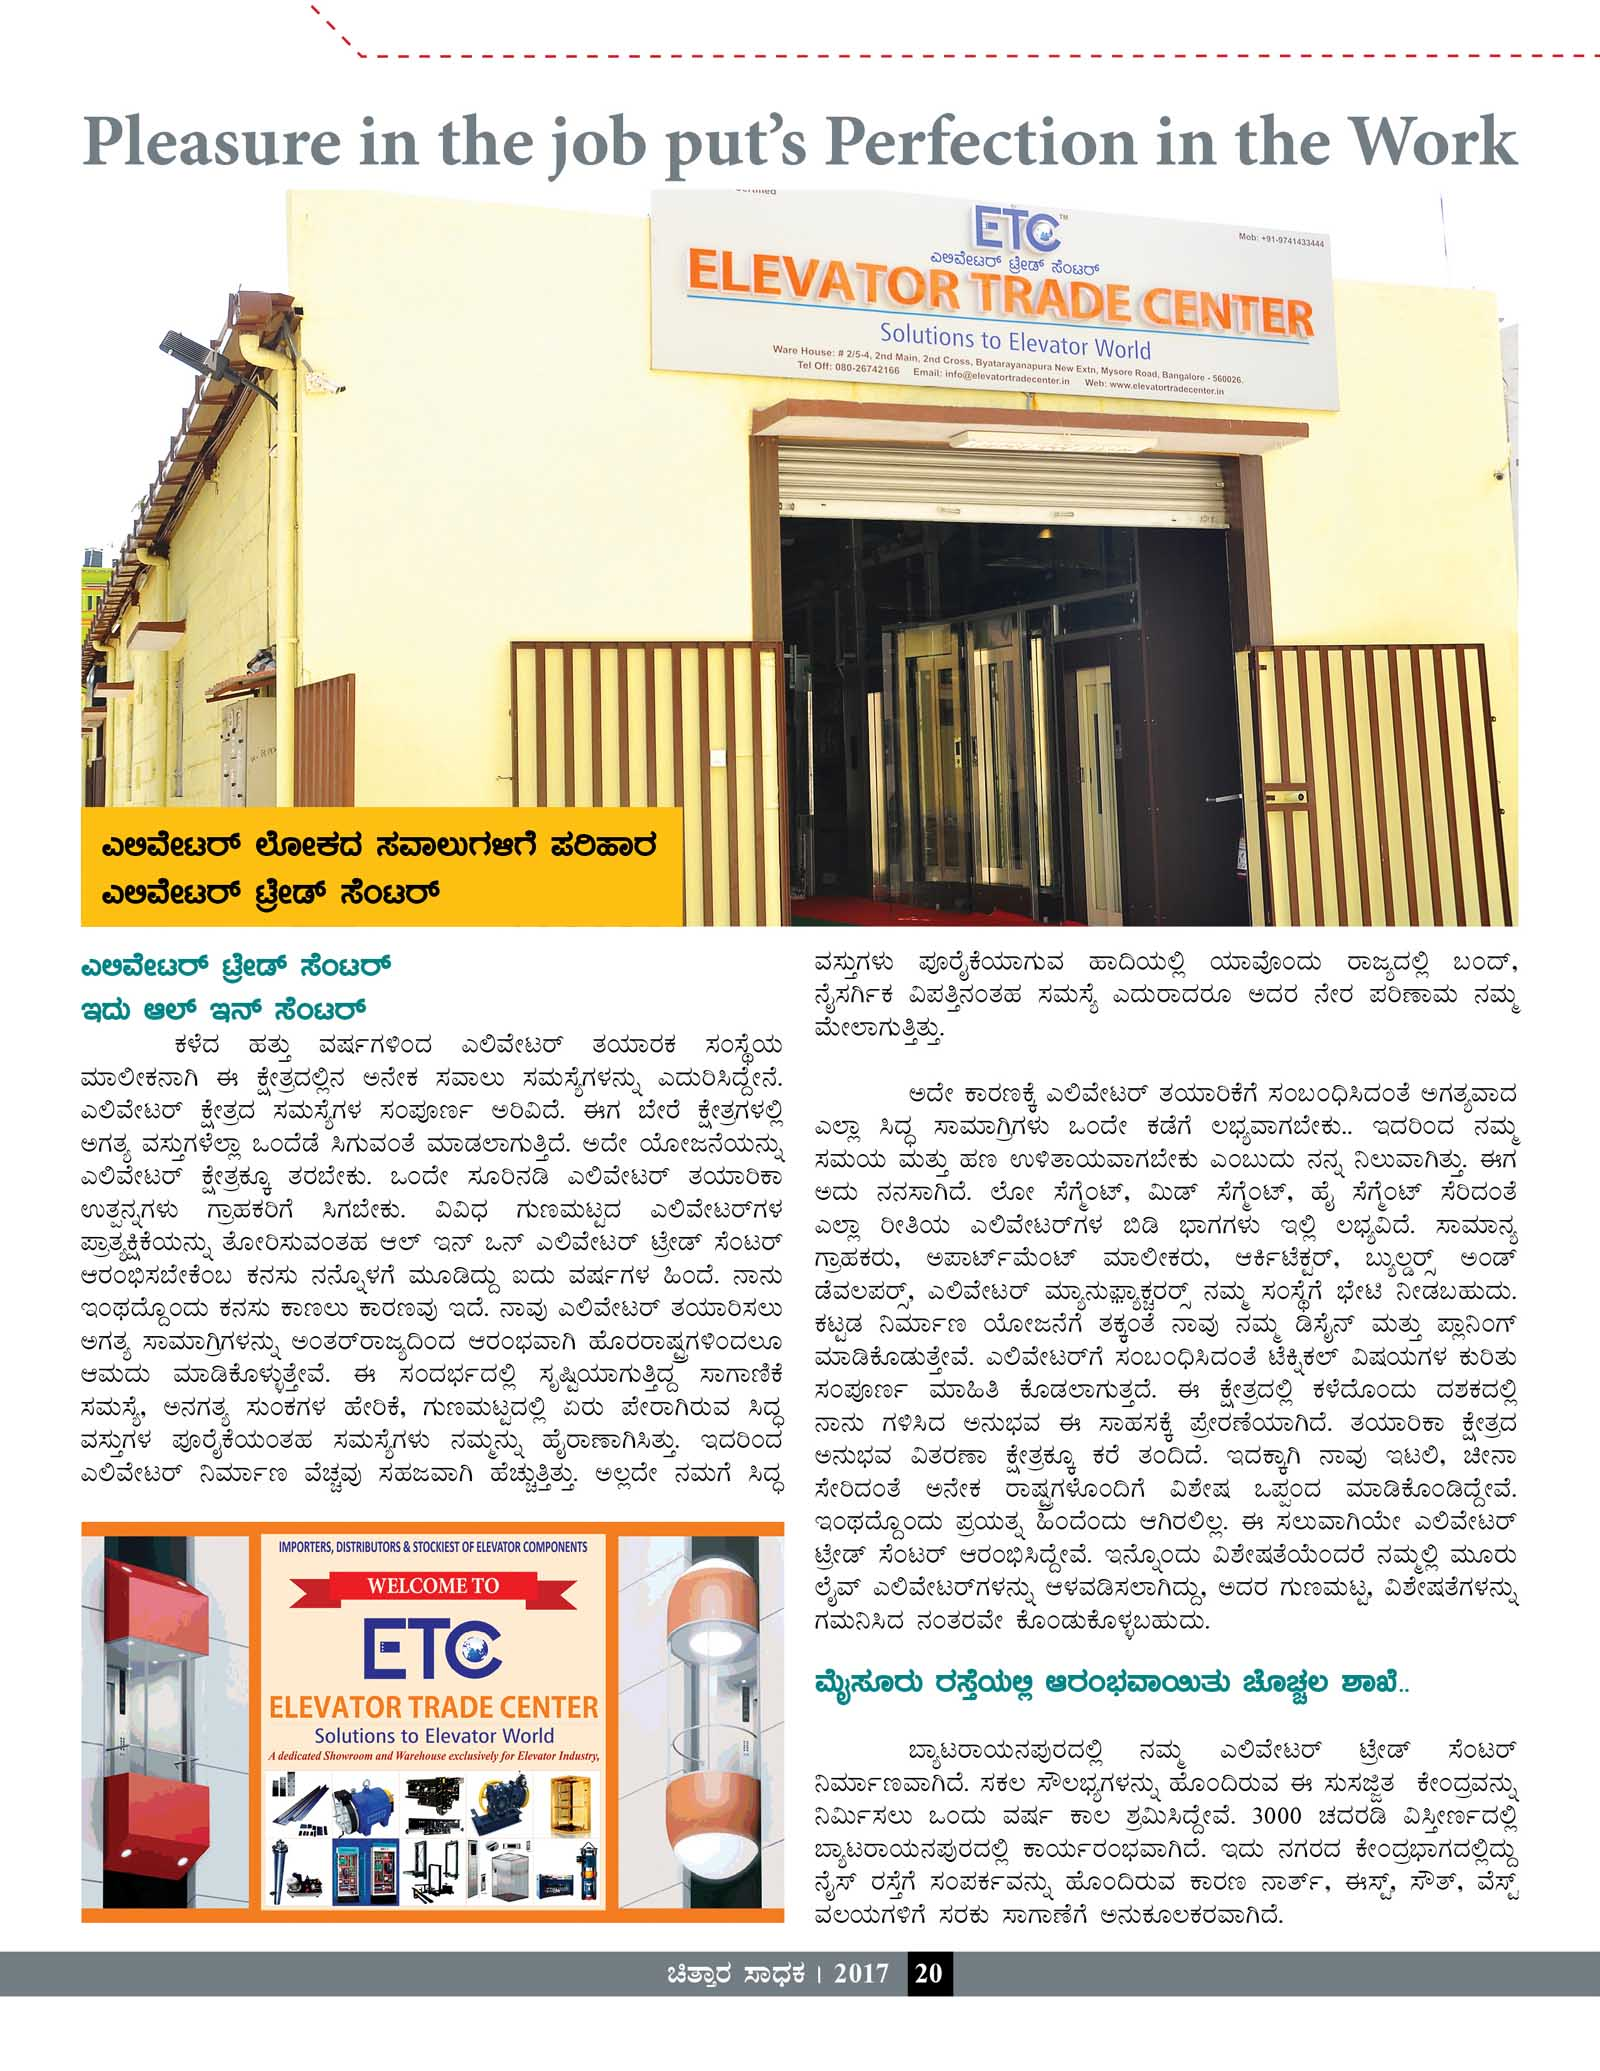 About || Elevator Trade Center